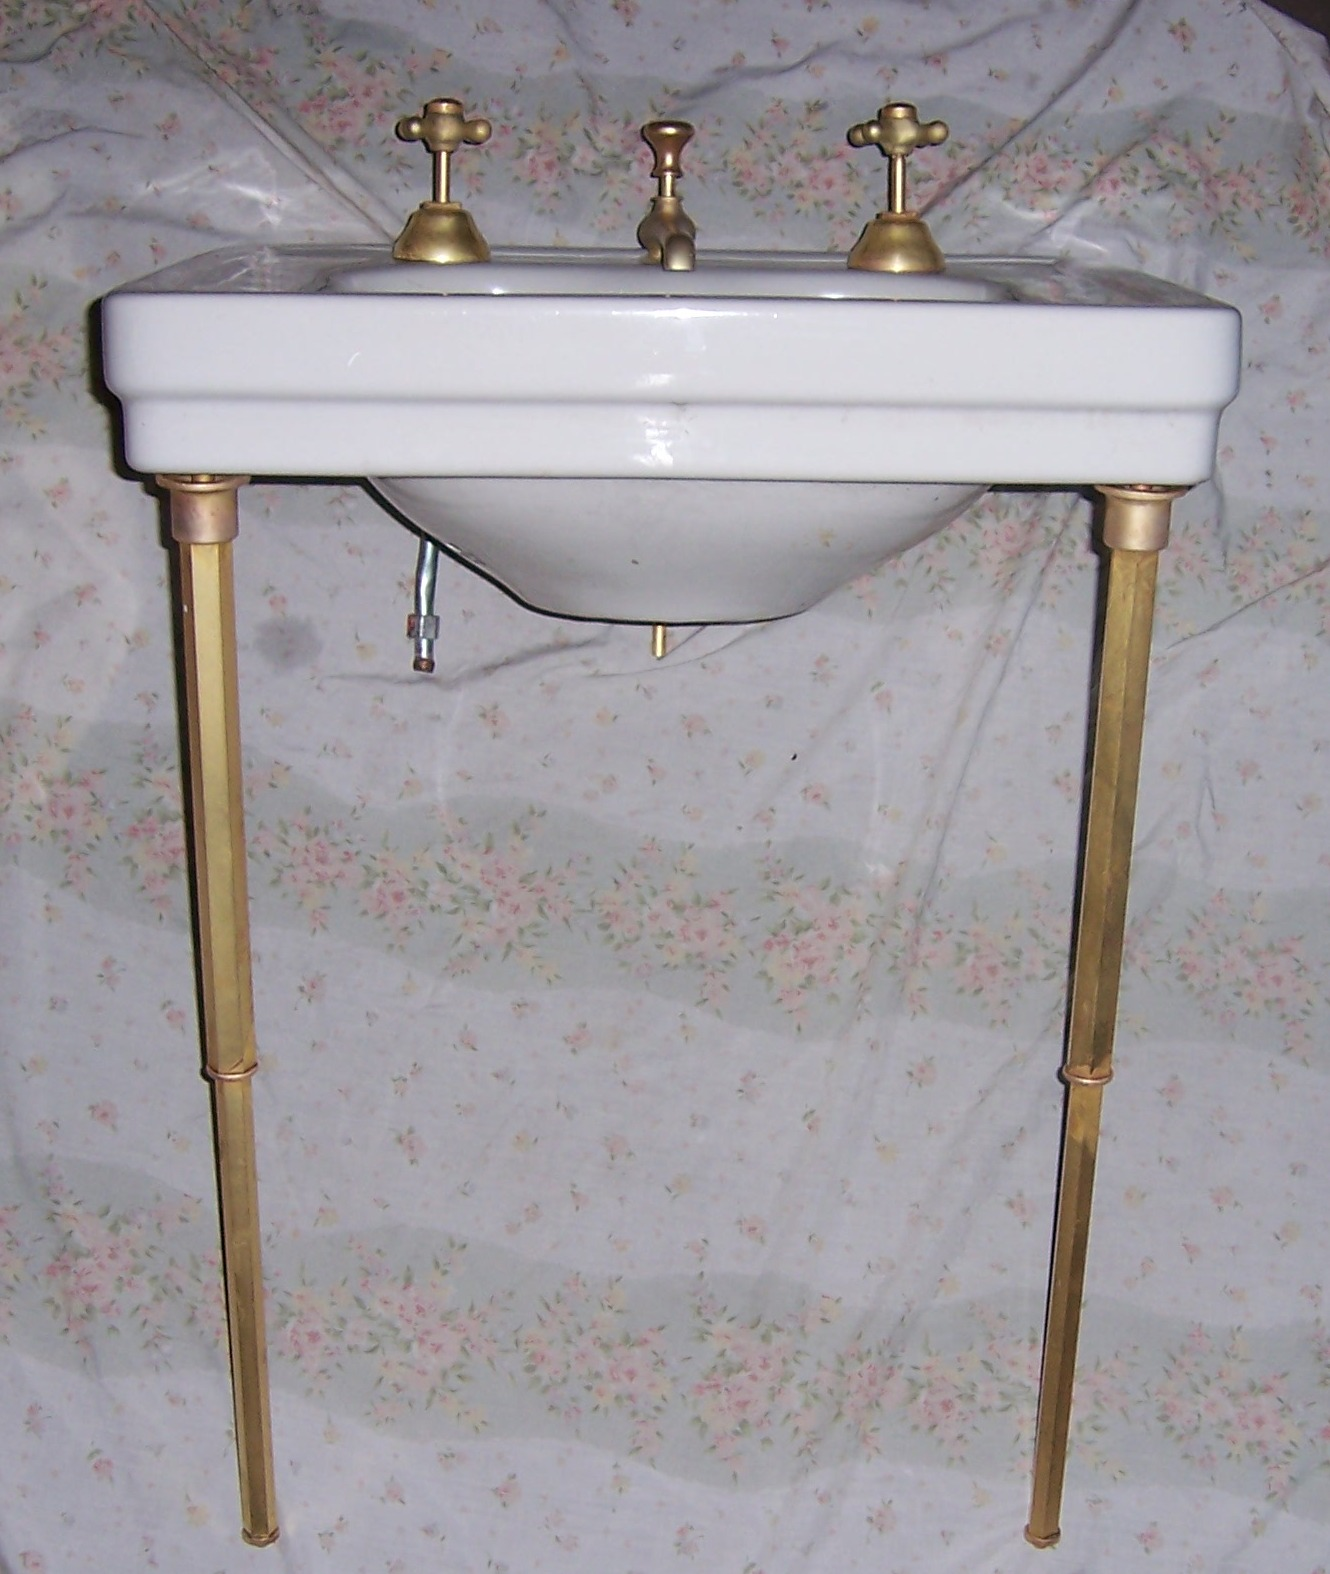 Lavatories | VintageBathroom